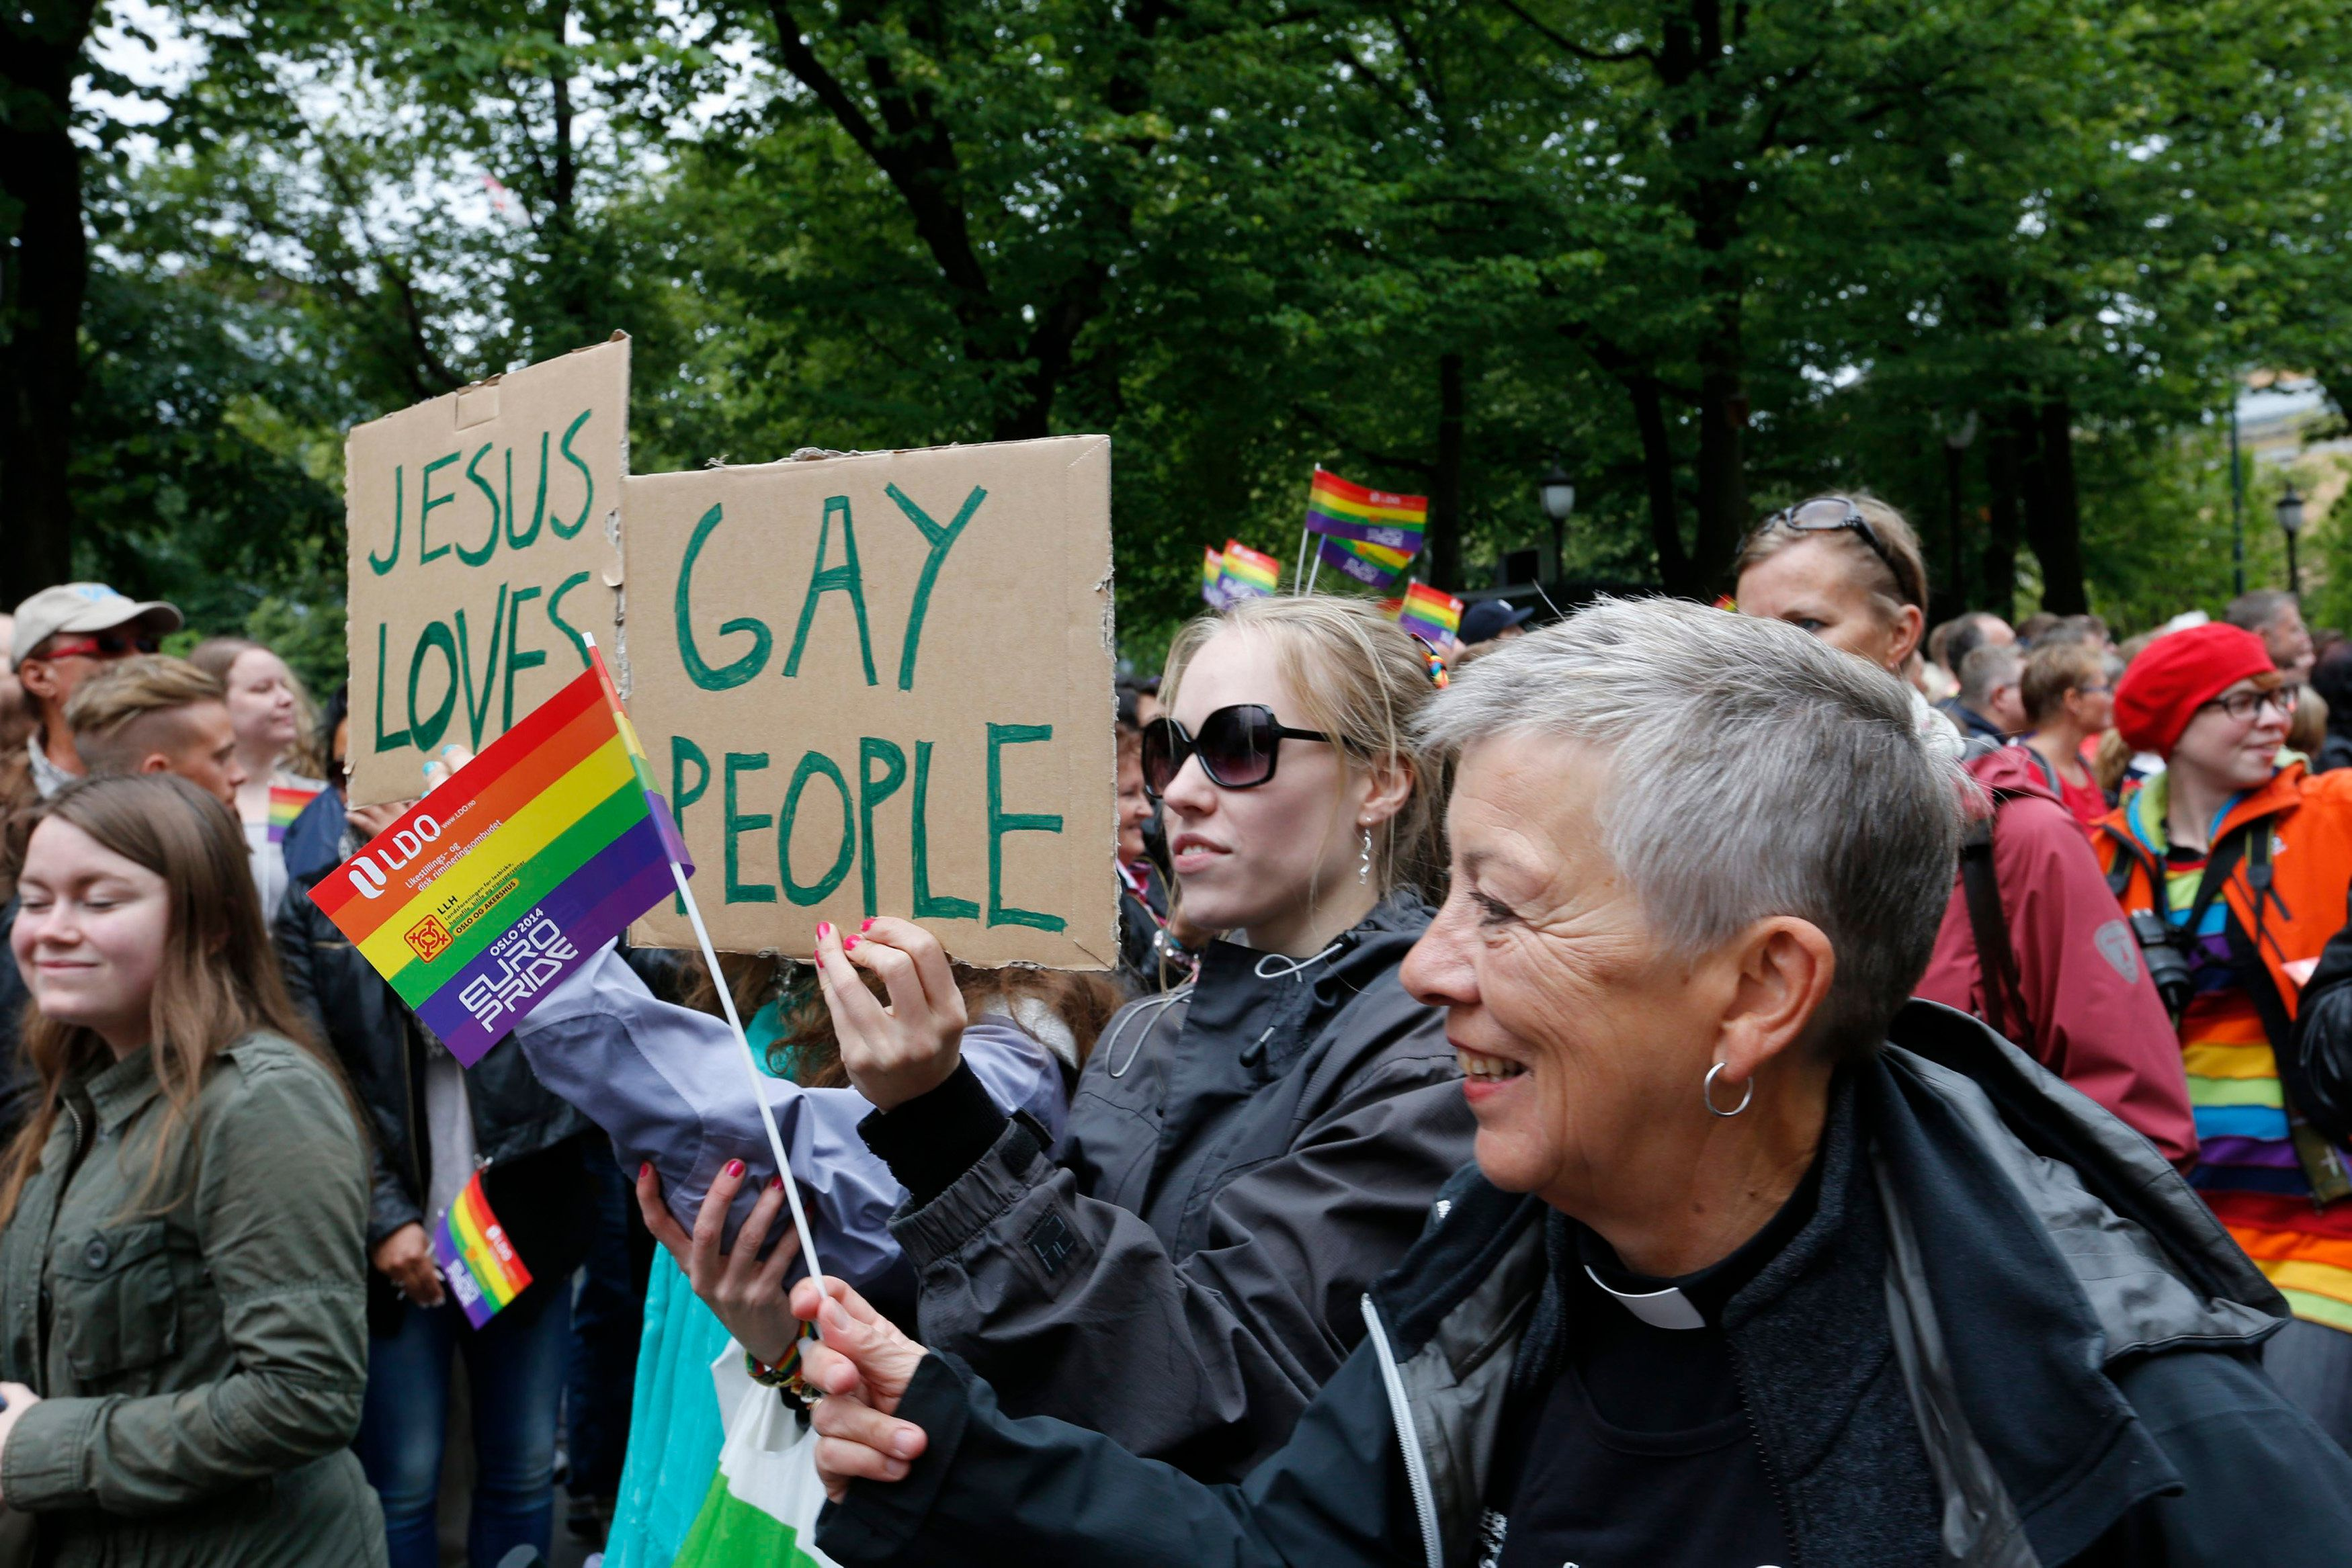 People hold a rainbow flag and signs during the EuroPride gay parade in downtown Oslo June 28, 2014. REUTERS/Terje Bendiksby/NTB Scanpix (NORWAY - Tags: SOCIETY)   ATTENTION EDITORS - THIS PICTURE WAS PROVIDED BY A THIRD PARTY. FOR EDITORIAL USE ONLY. NOT FOR SALE FOR MARKETING OR ADVERTISING CAMPAIGNS. THIS PICTURE IS DISTRIBUTED EXACTLY AS RECEIVED BY REUTERS, AS A SERVICE TO CLIENTS. NORWAY OUT. NO COMMERCIAL OR EDITORIAL SALES IN NORWAY. NO COMMERCIAL SALES